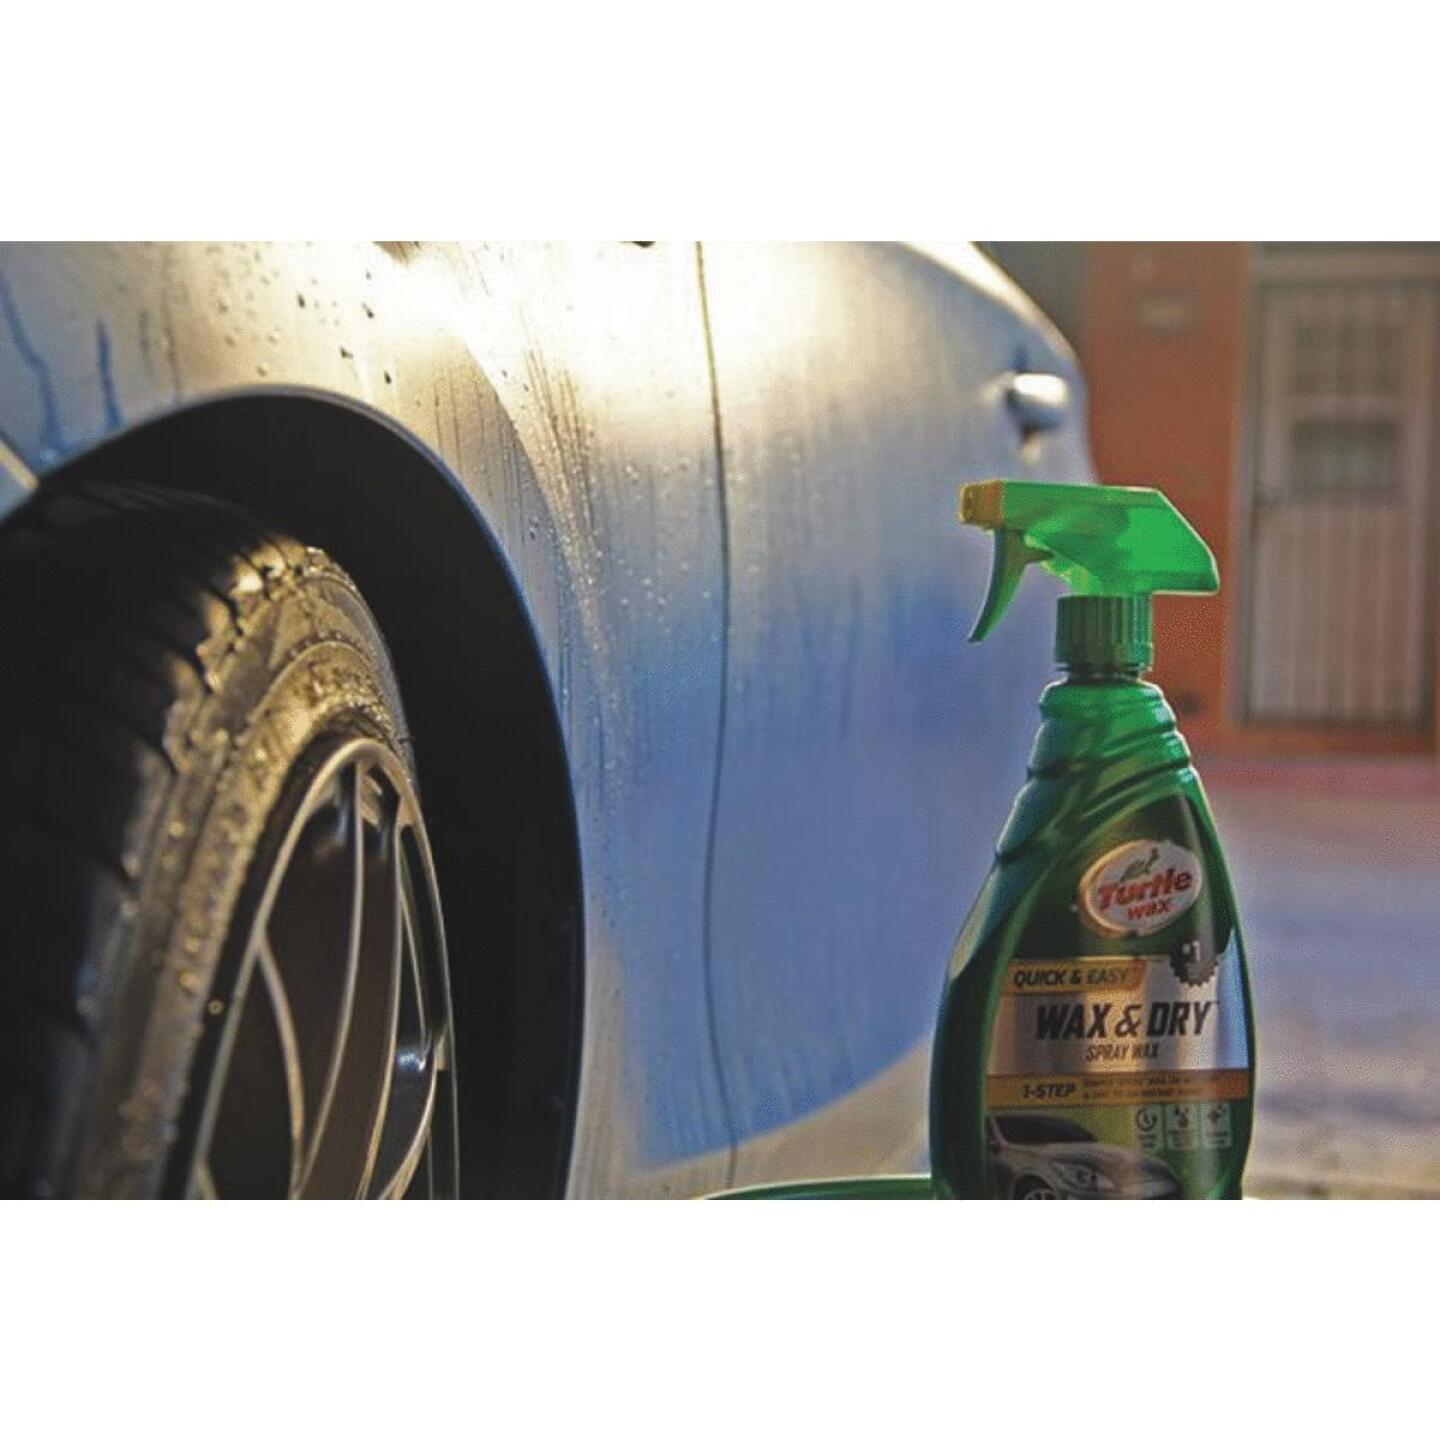 Turtle Wax Wax & Dry 26 oz Trigger Spray Spray Car Wax Image 2